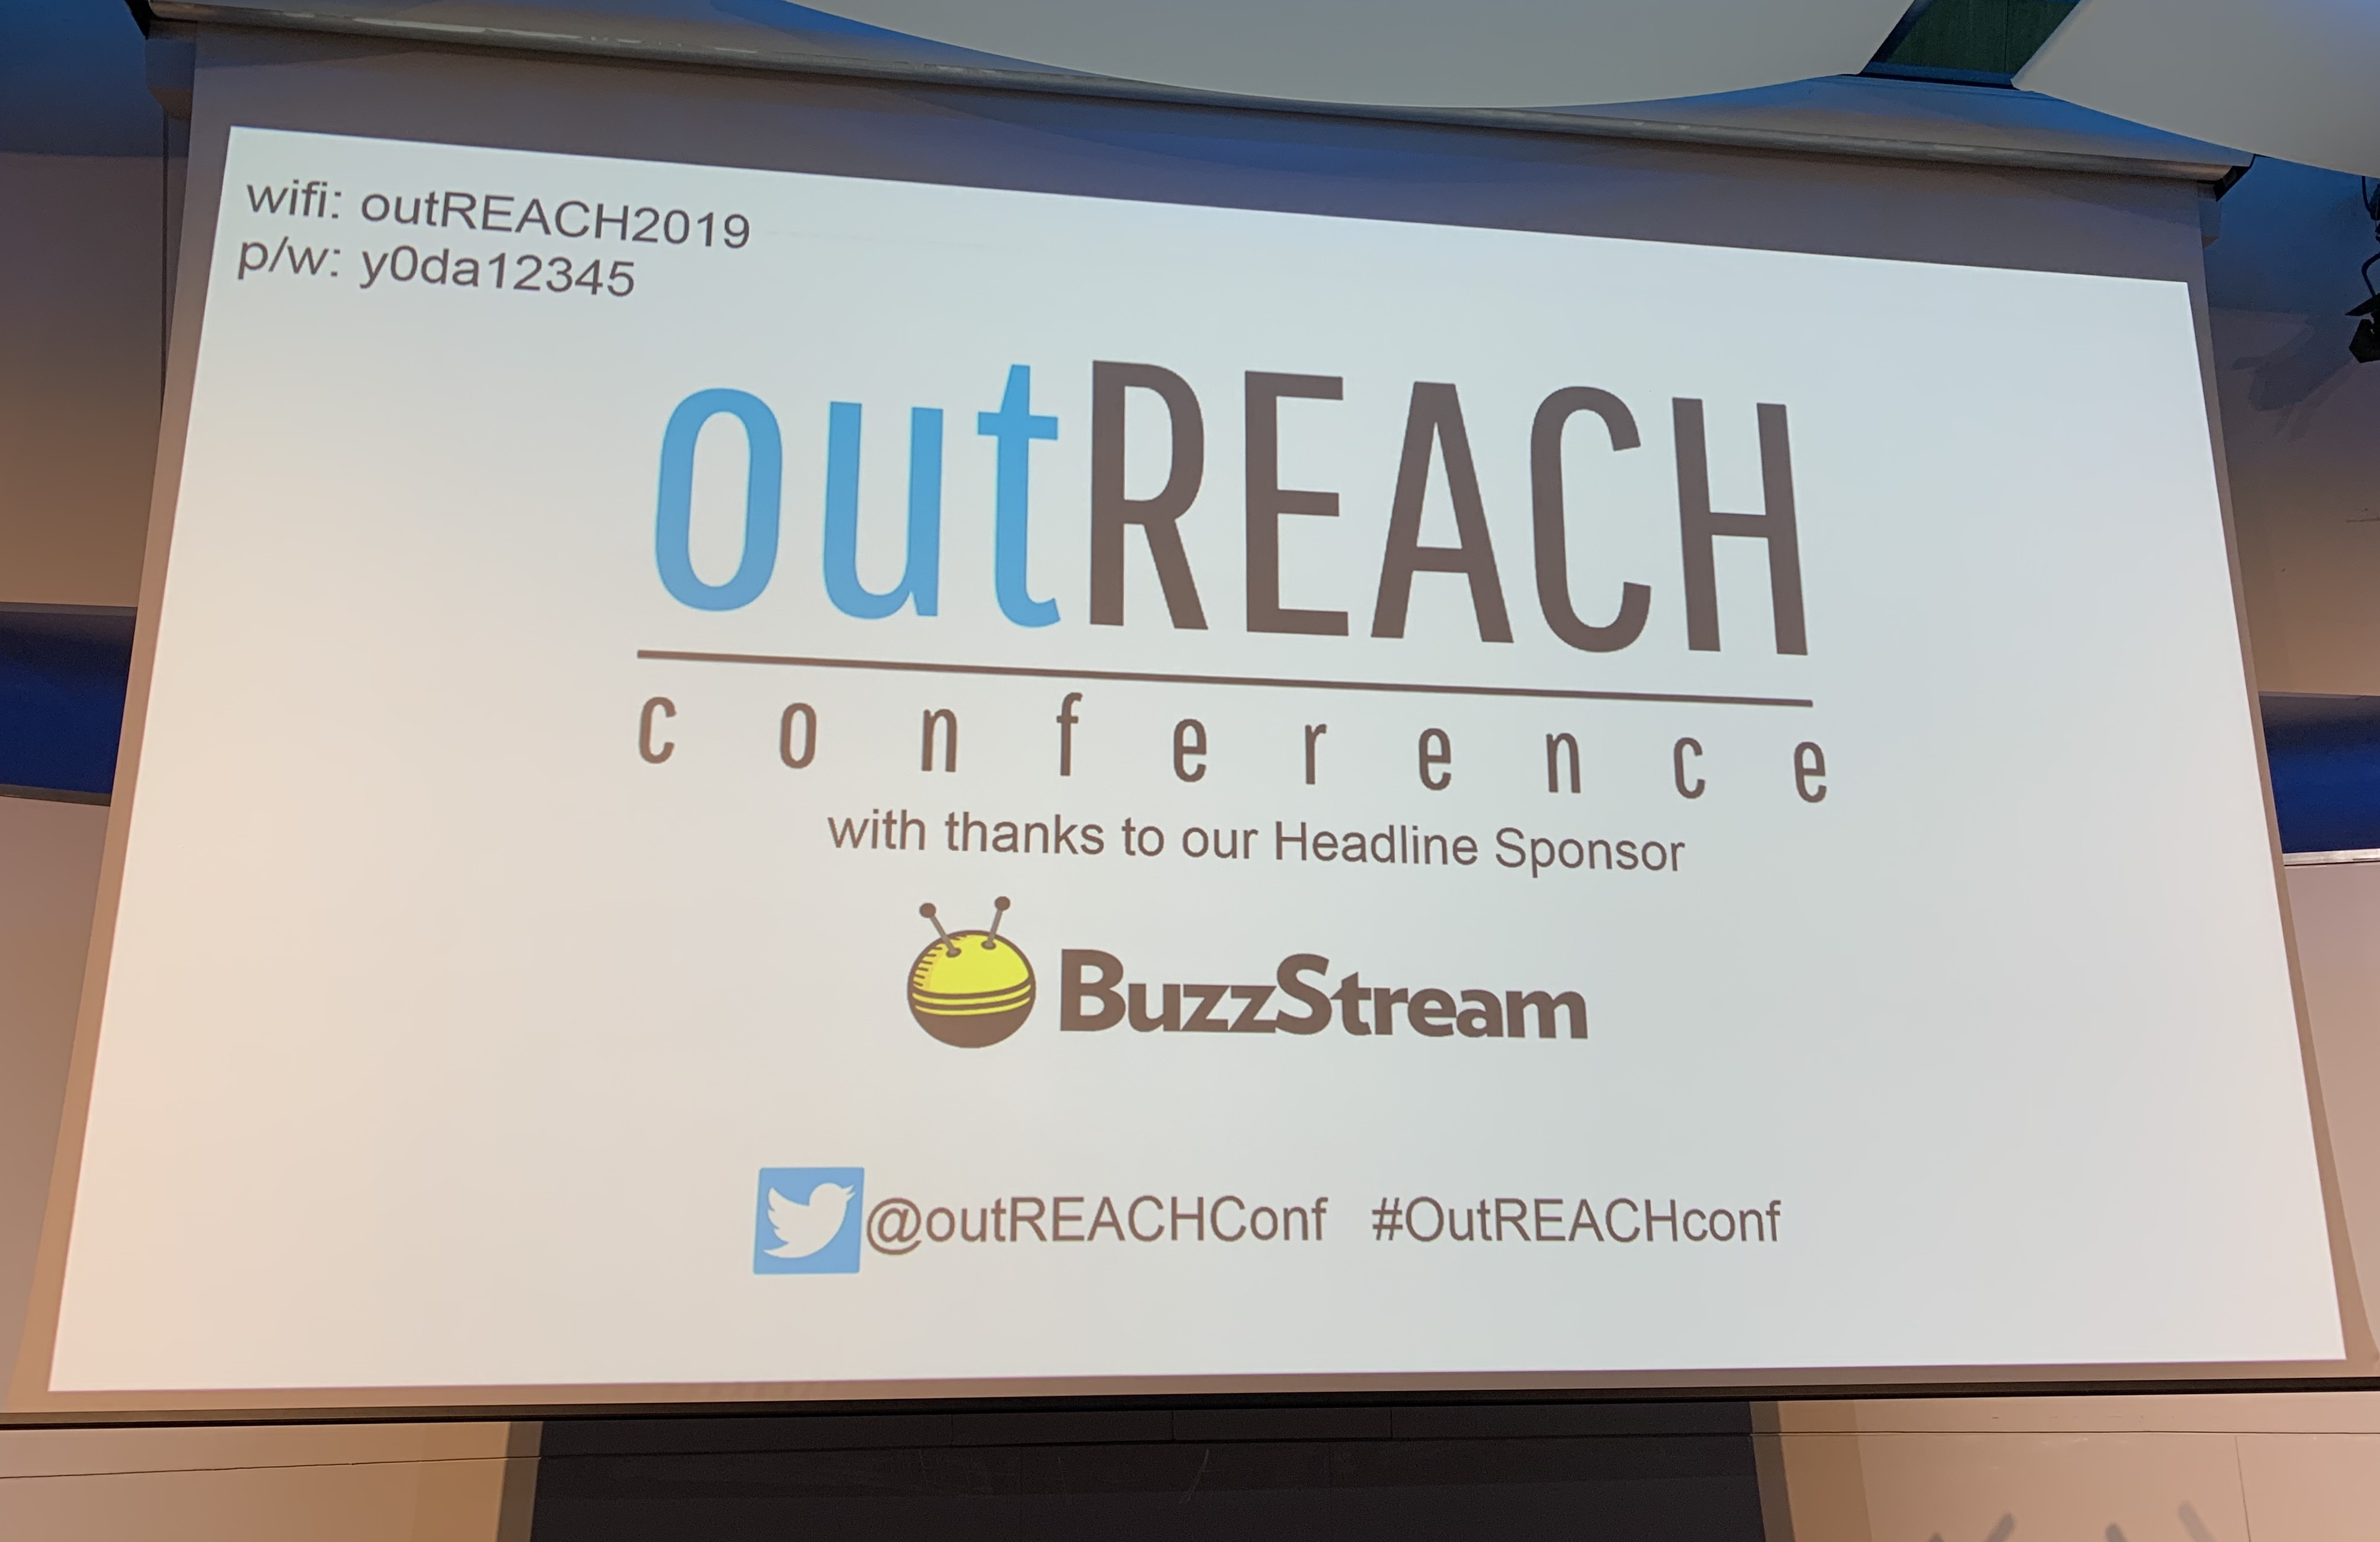 outREACH conference in London